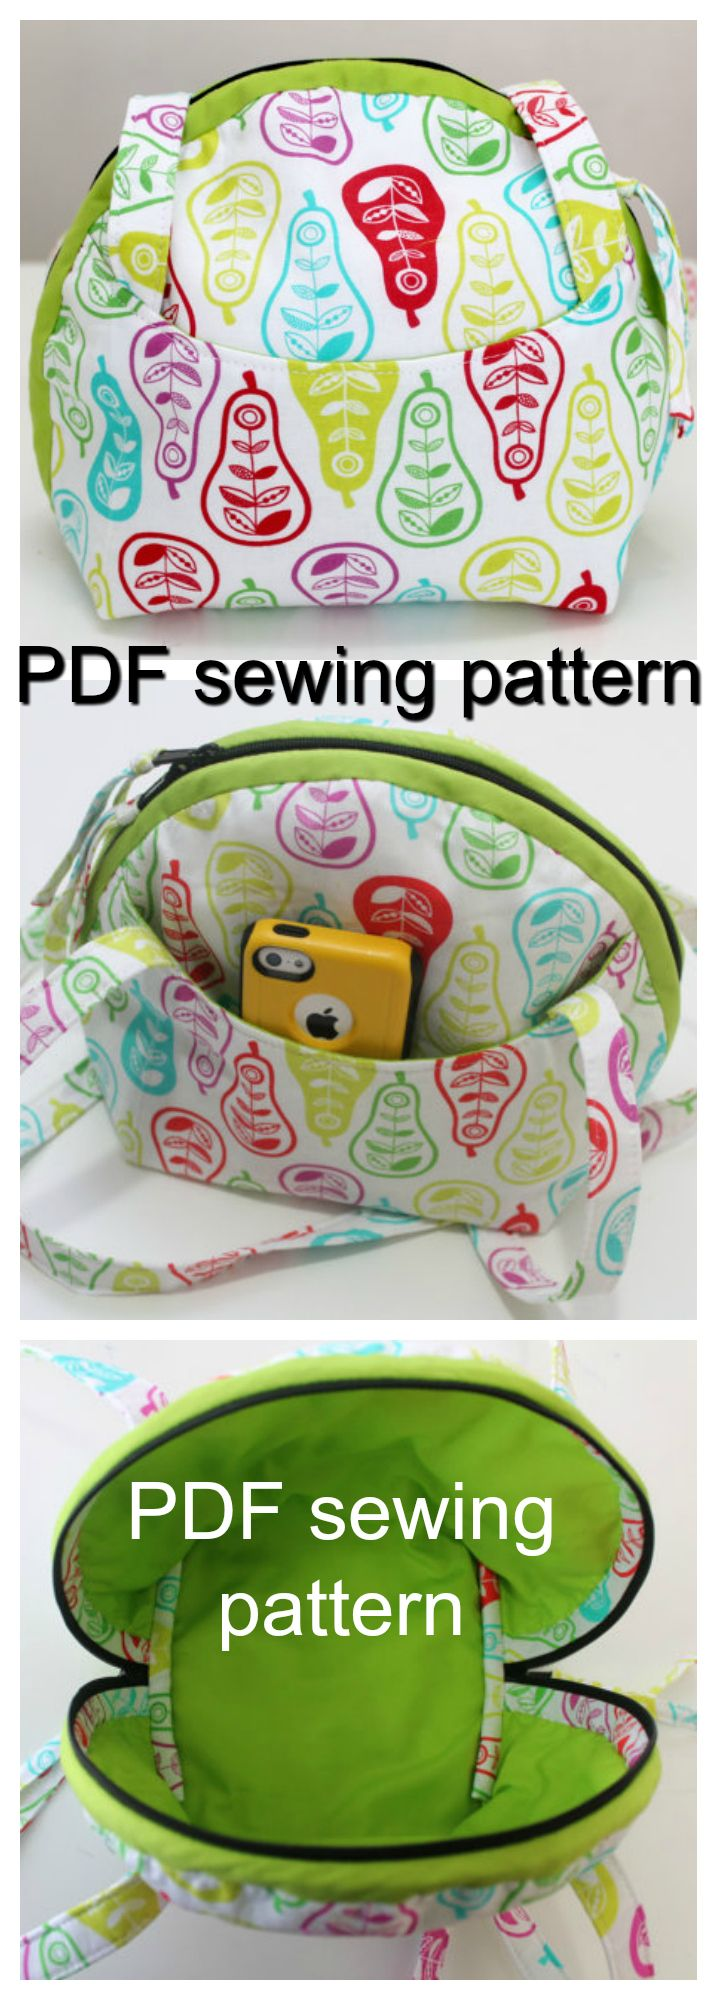 Pdf downloadable purse sewing pattern cool sewing pinterest pdf downloadable purse sewing pattern jeuxipadfo Images